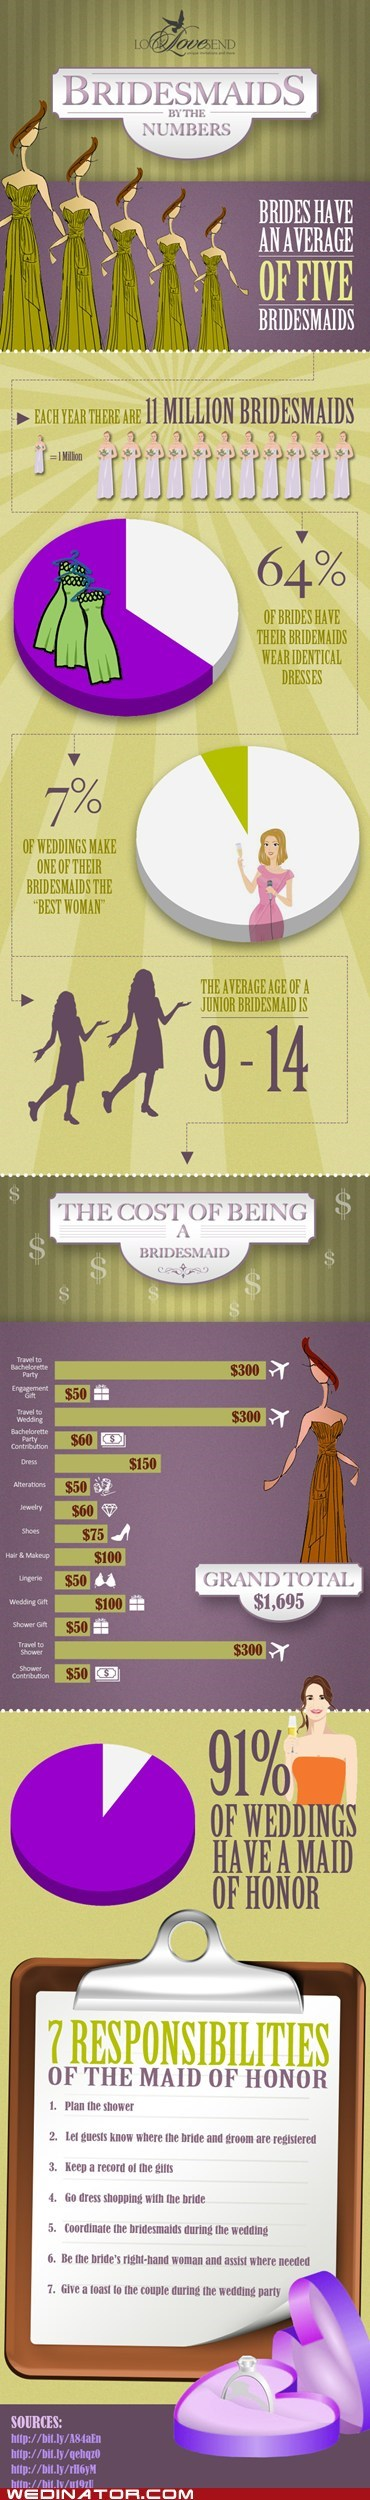 bridesmaids,funny wedding photos,infographics,money